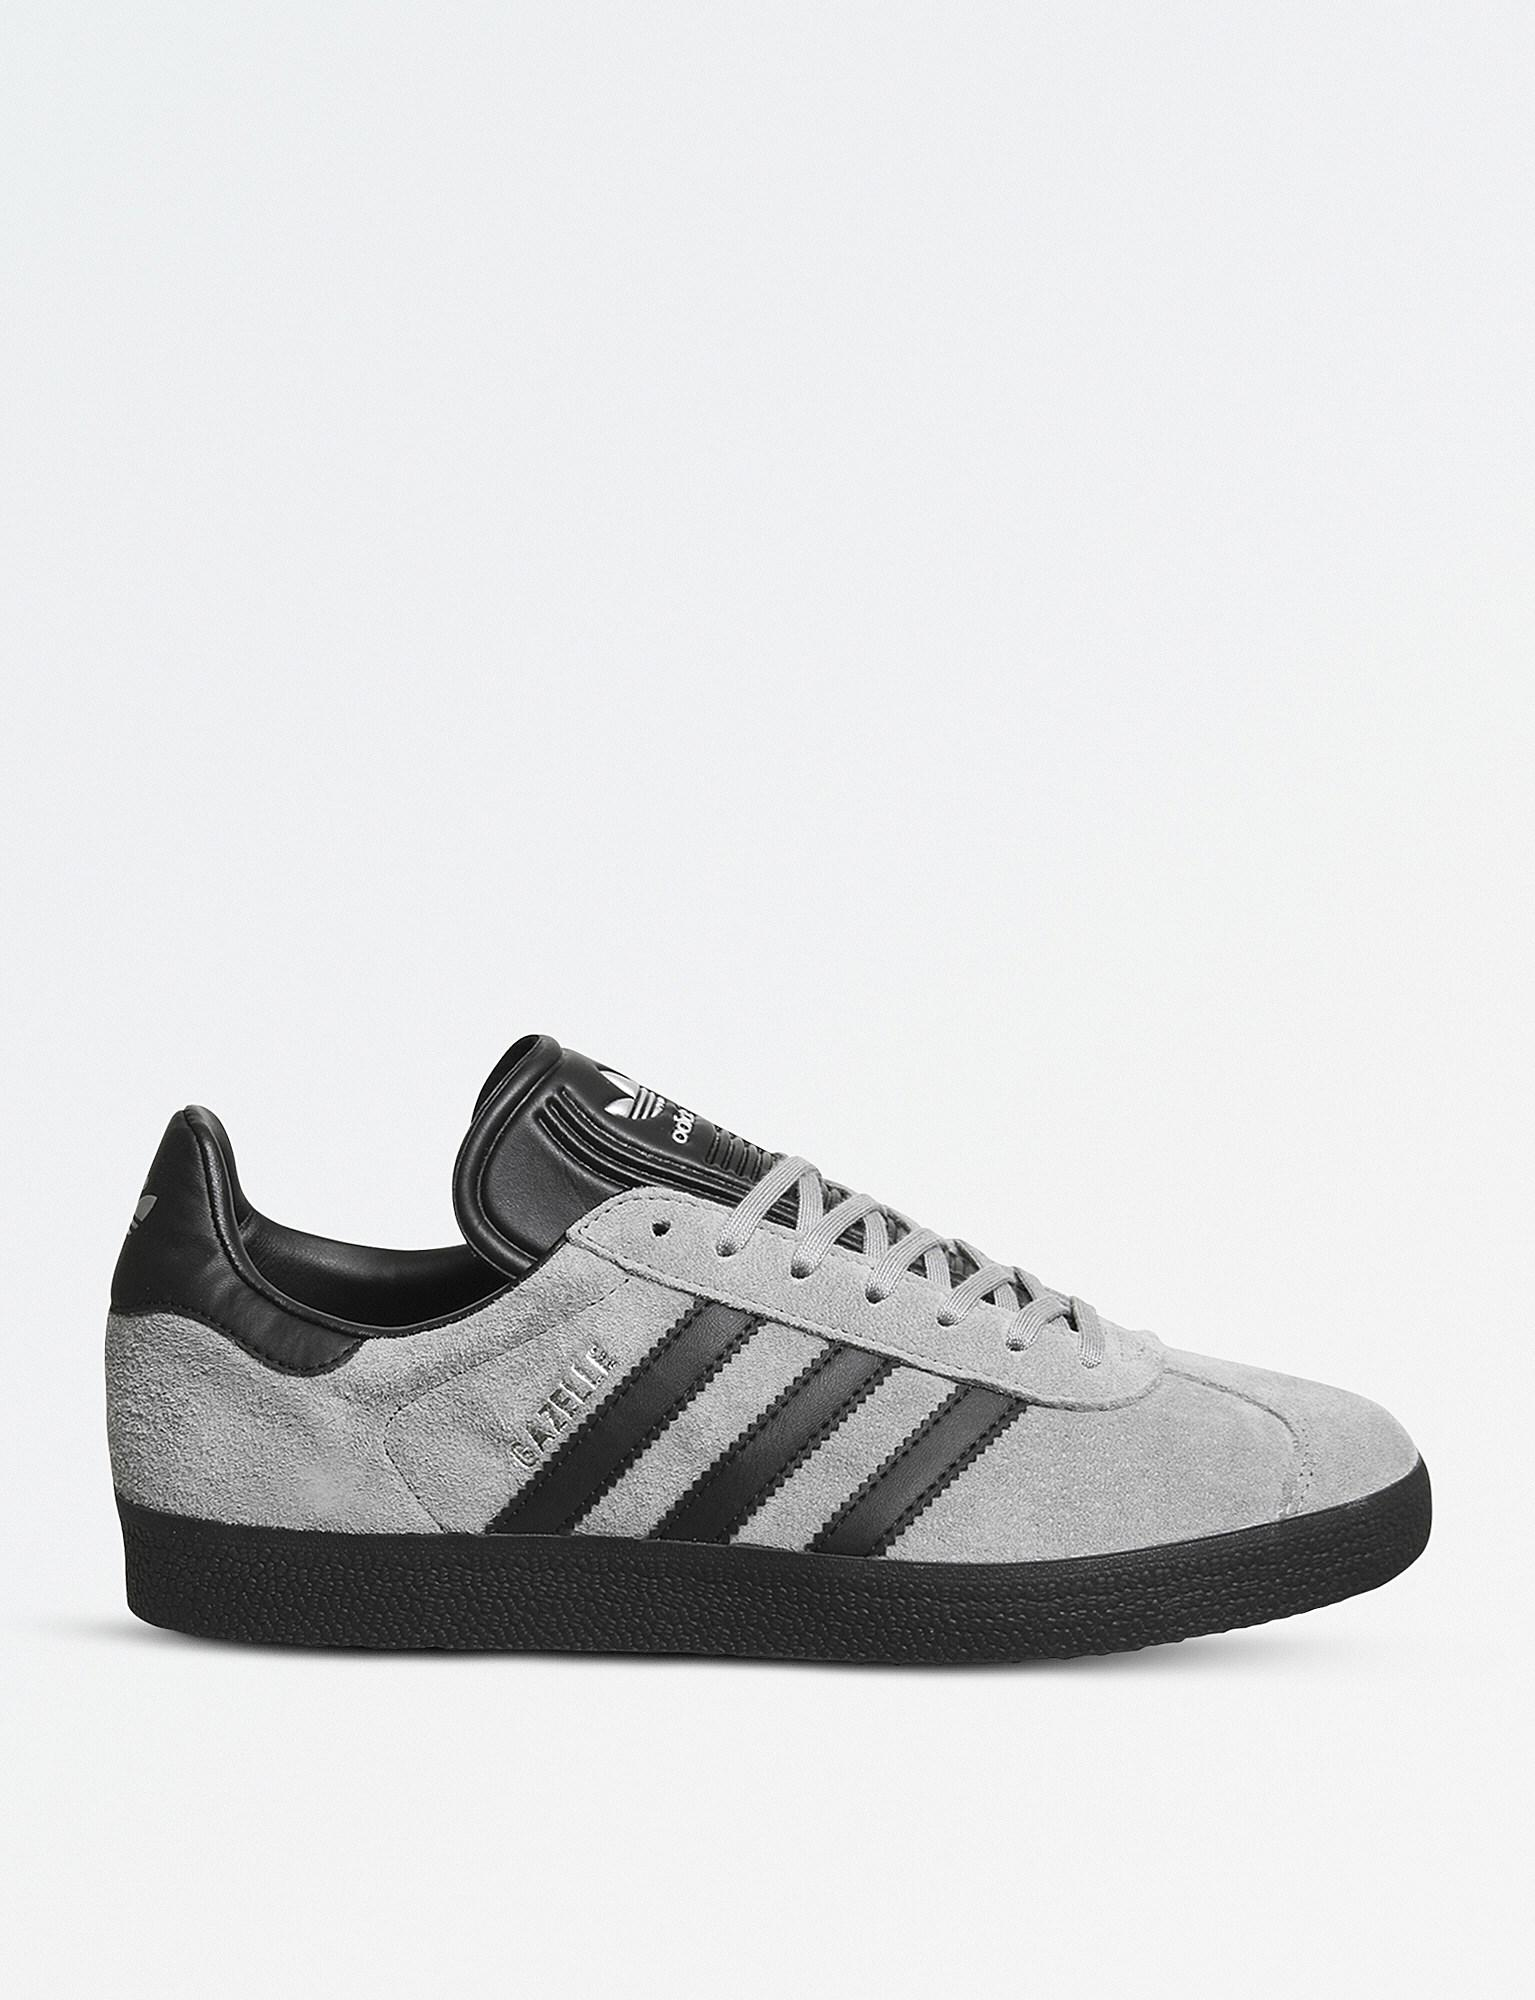 Gazelle suede low-top trainers adidas Discount Fashionable 100% Guaranteed Cheap Online With Mastercard Online Pick A Best Cheap Price IKlPcGYS4L